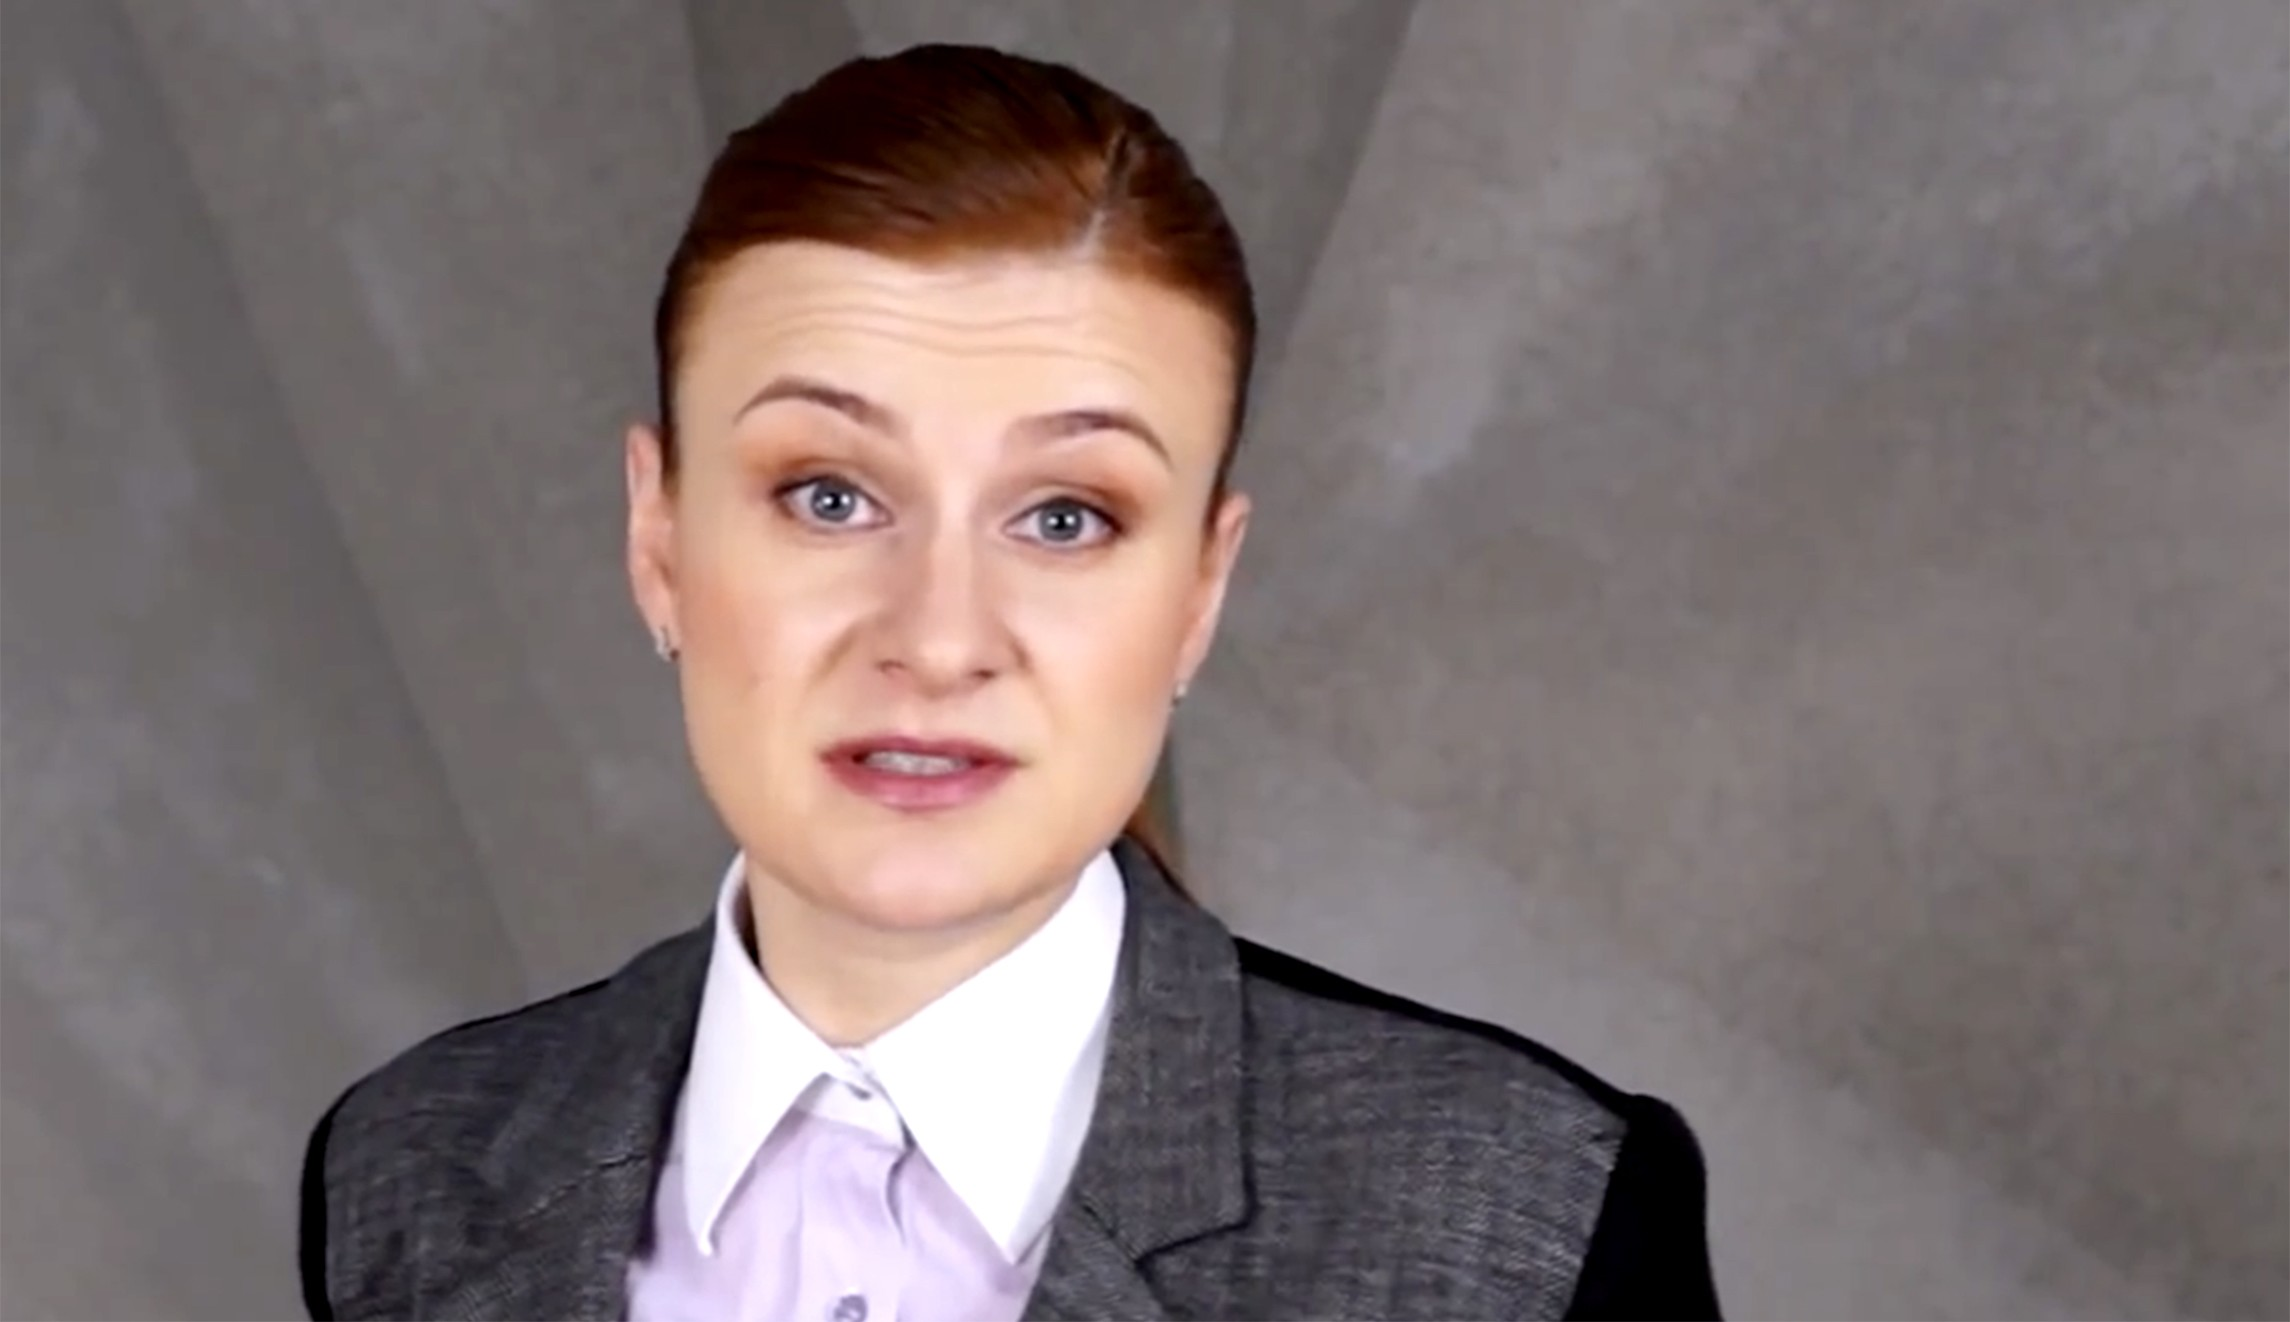 Maria Butina Ethnicity, Race, Religion and Nationality